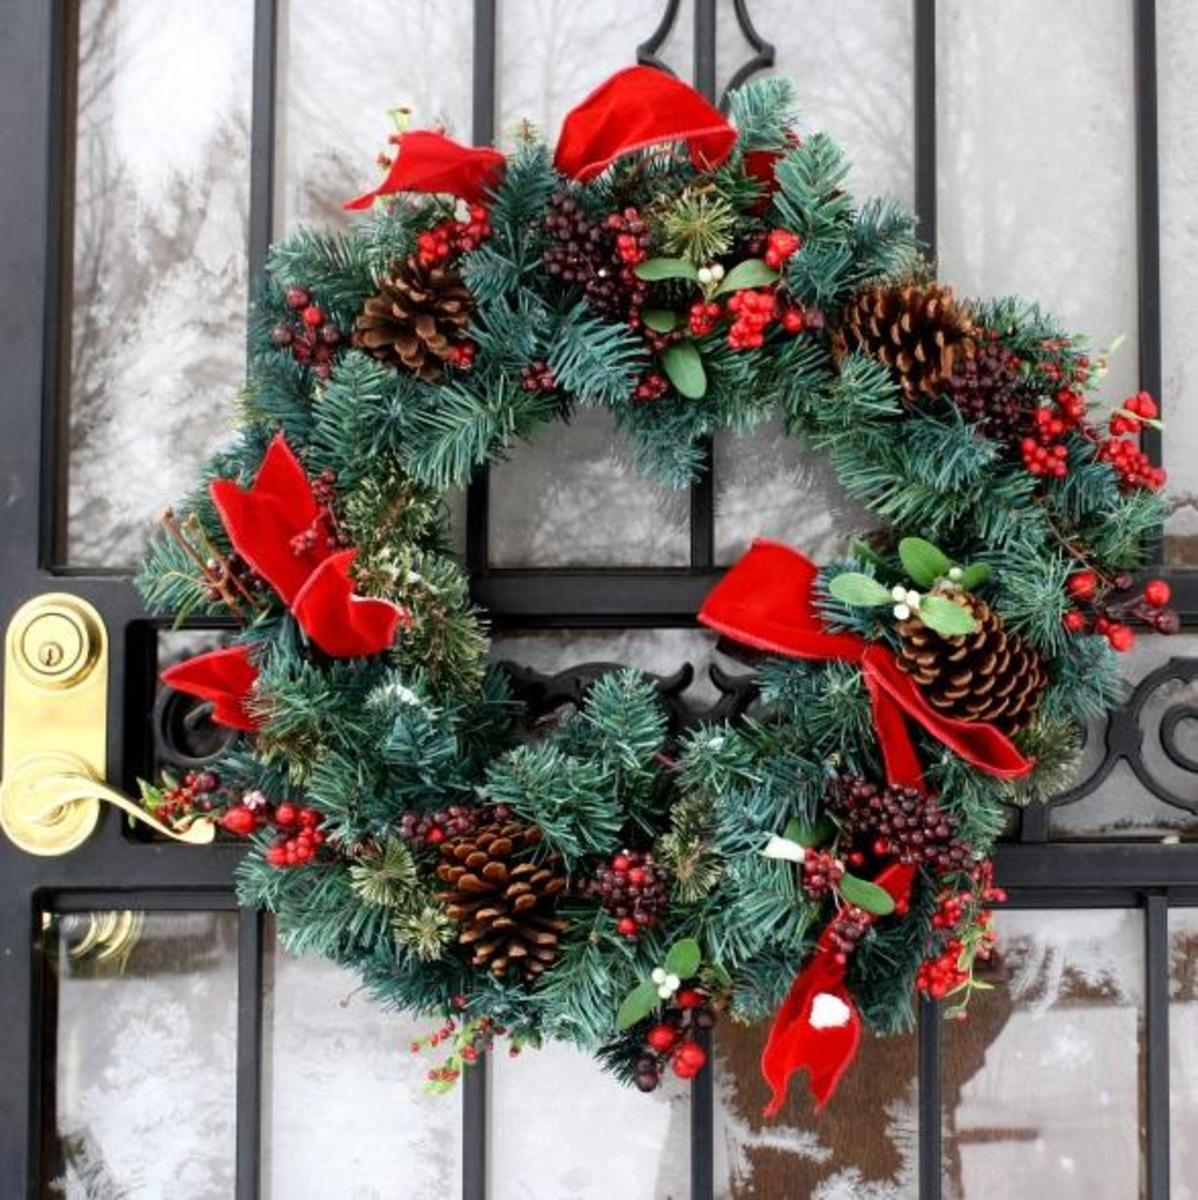 An attractive Christmas door wreath, decorated with mistletoe